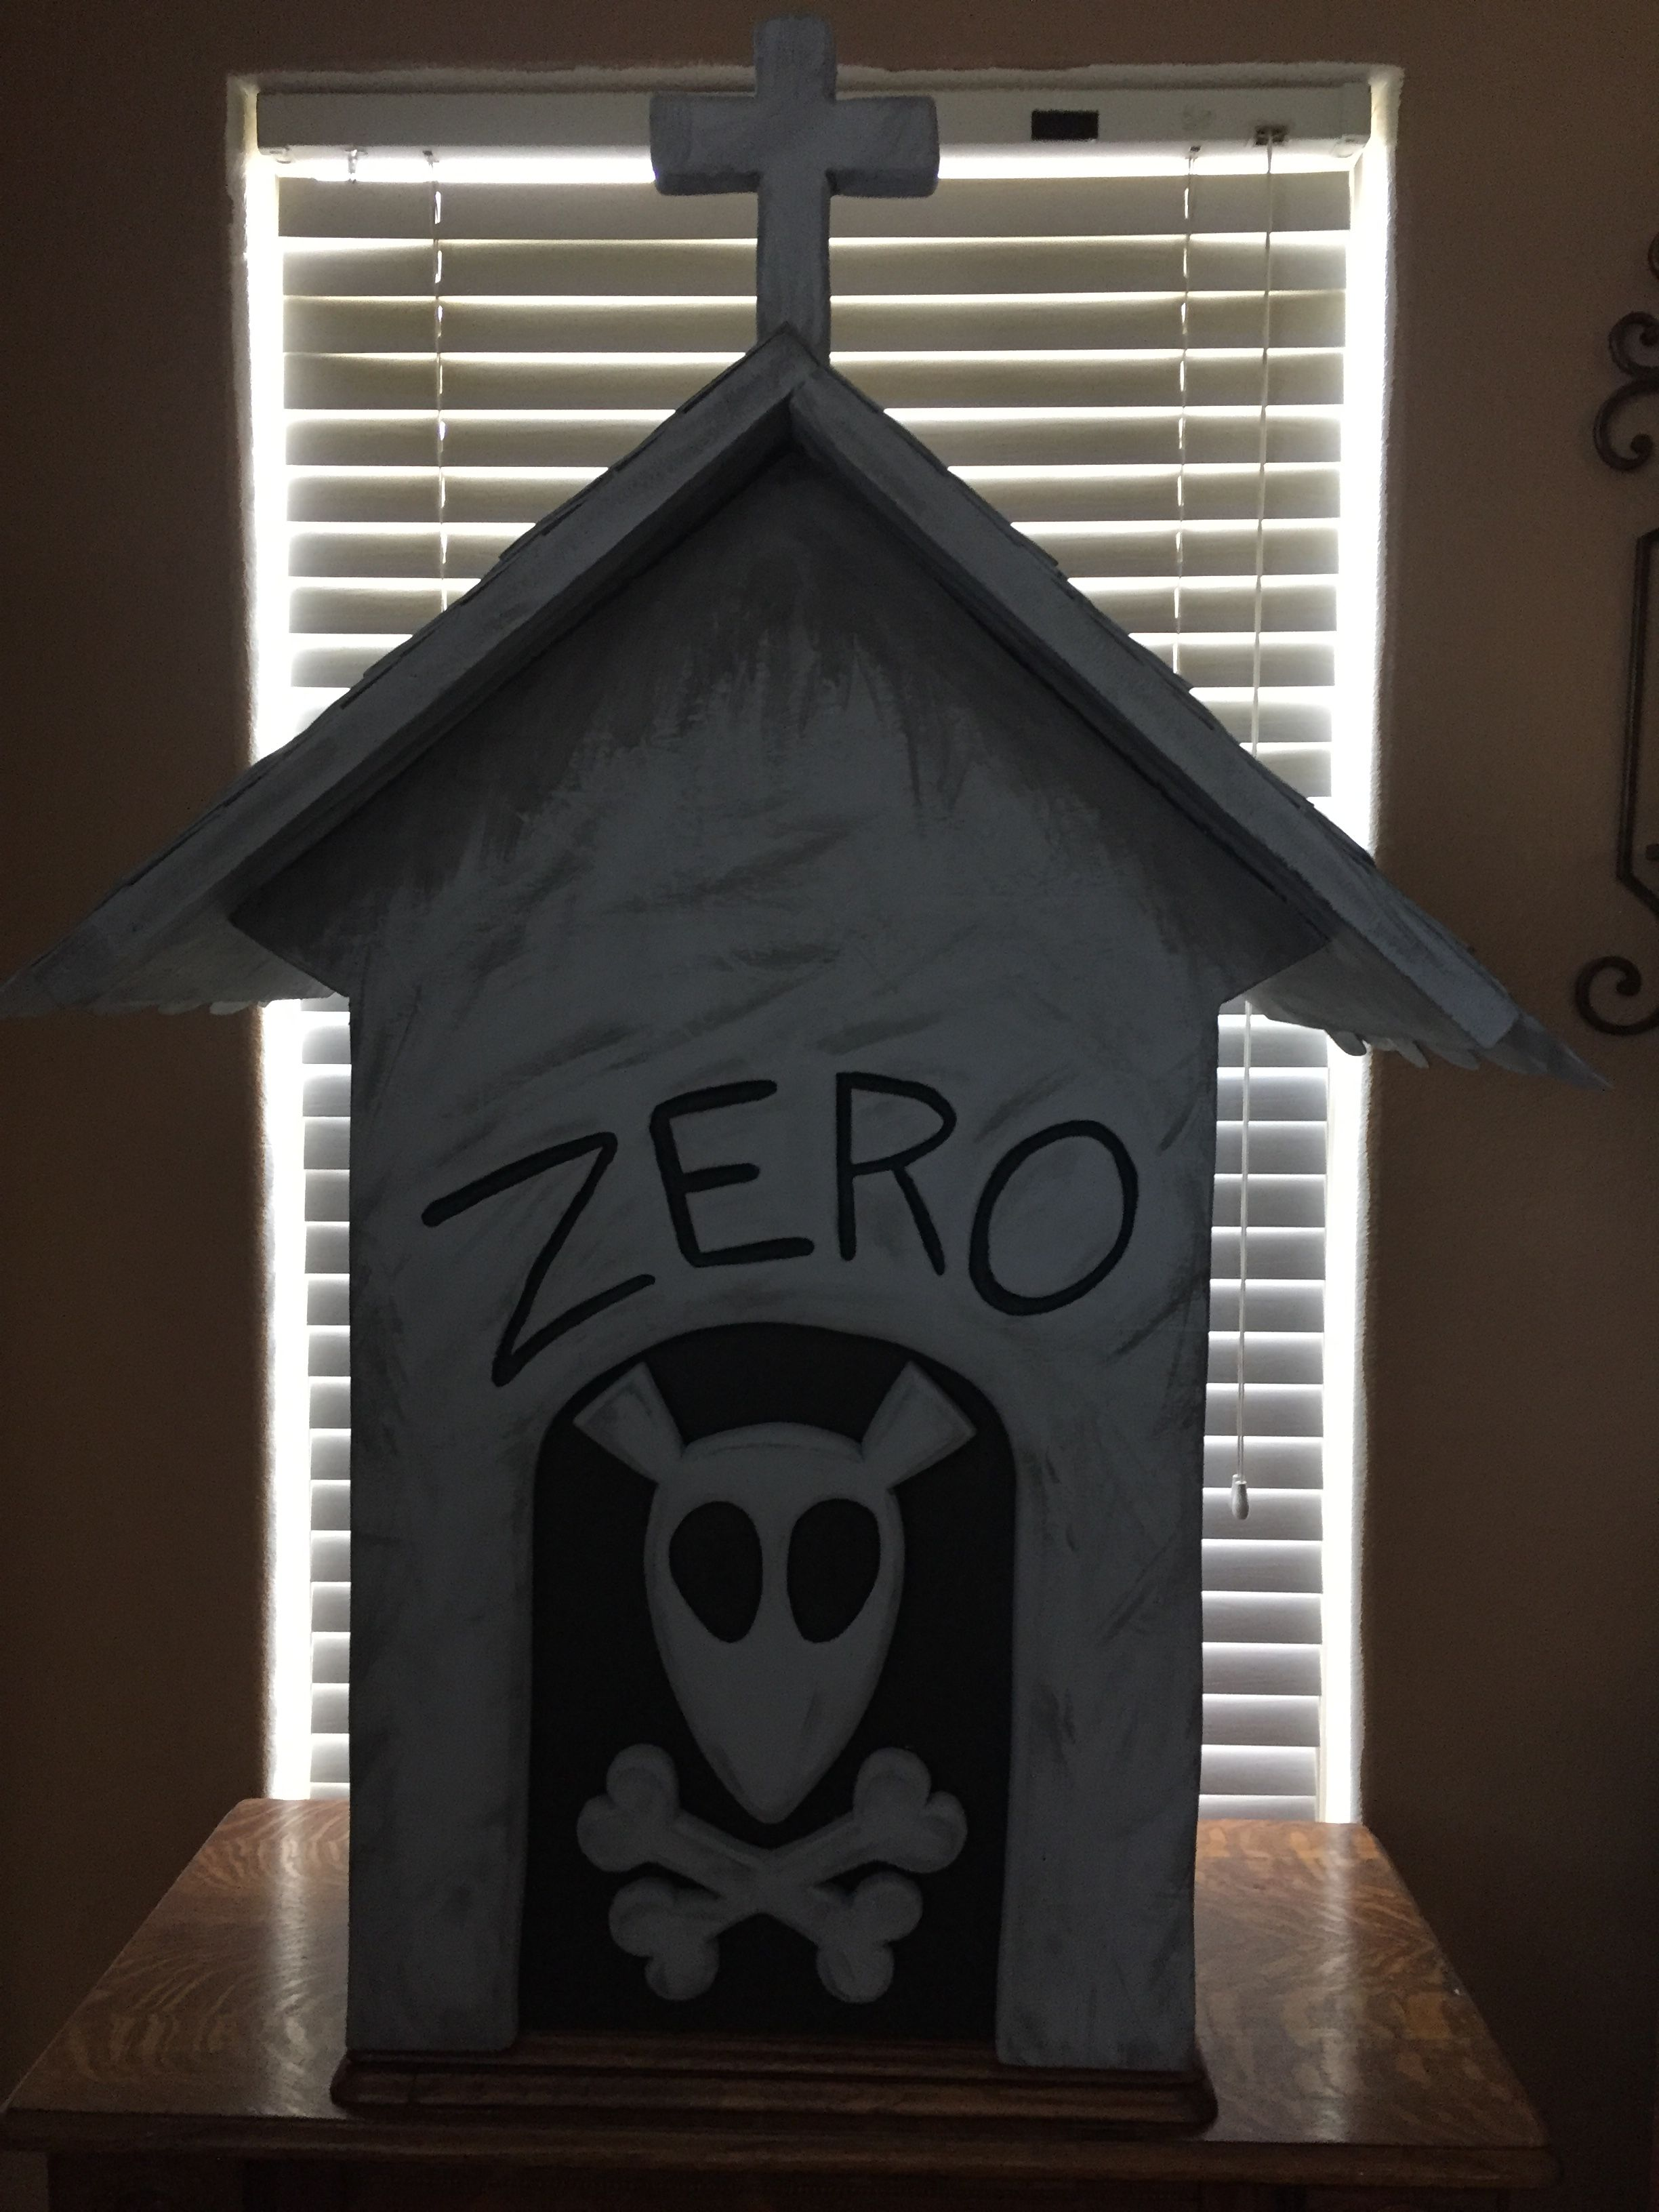 my diy zeros dog house from nightmare before christmas made from pink insulation foam - When Was The Nightmare Before Christmas Made